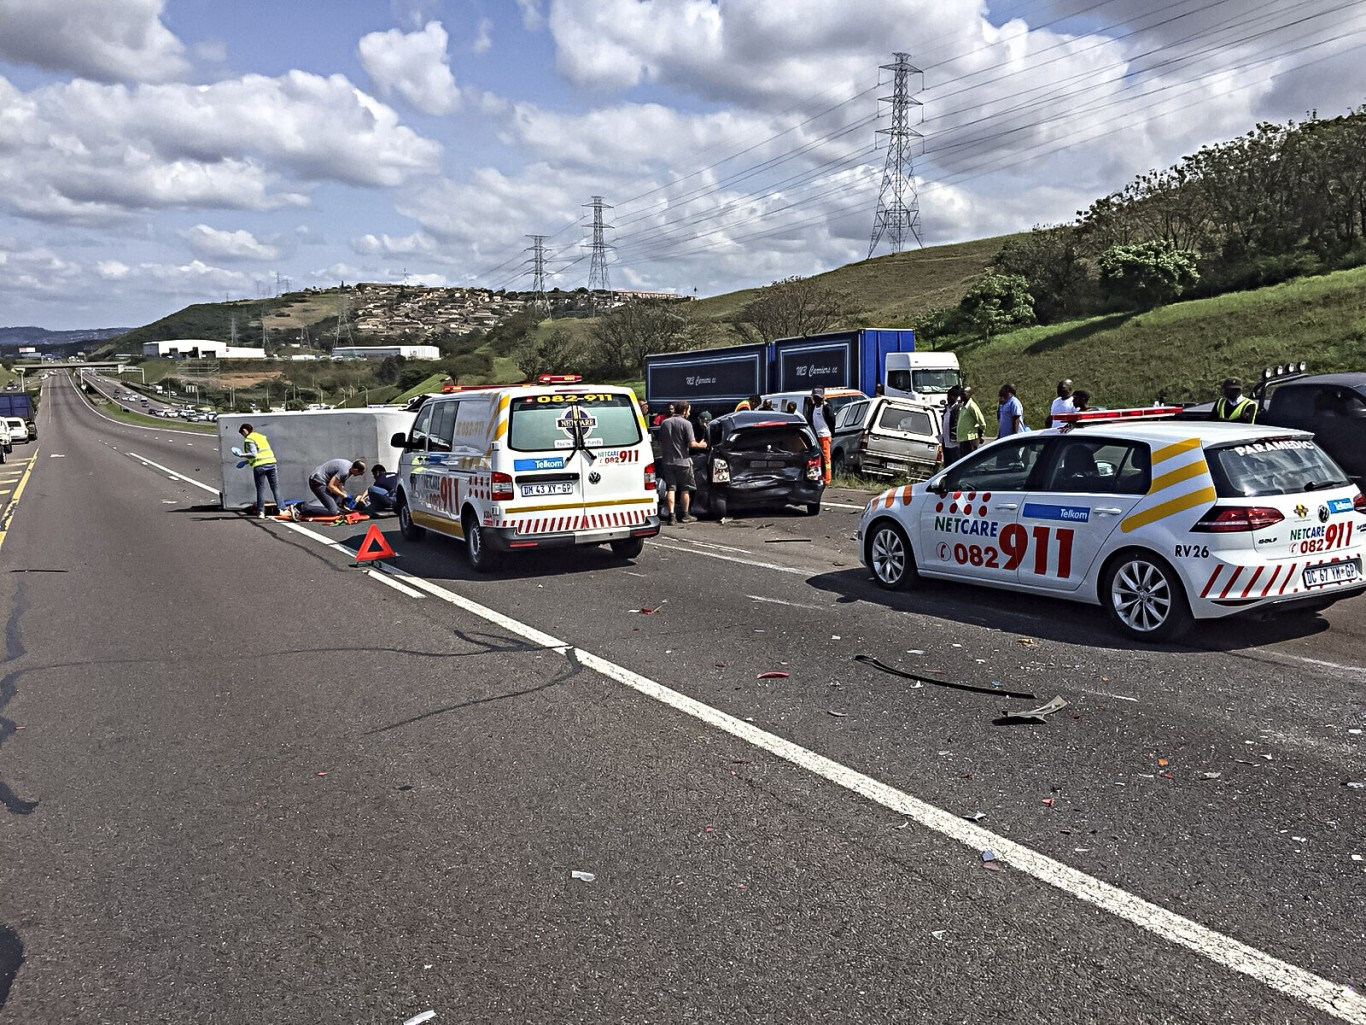 Umhlanga N2 south road crash leaves 5 injured